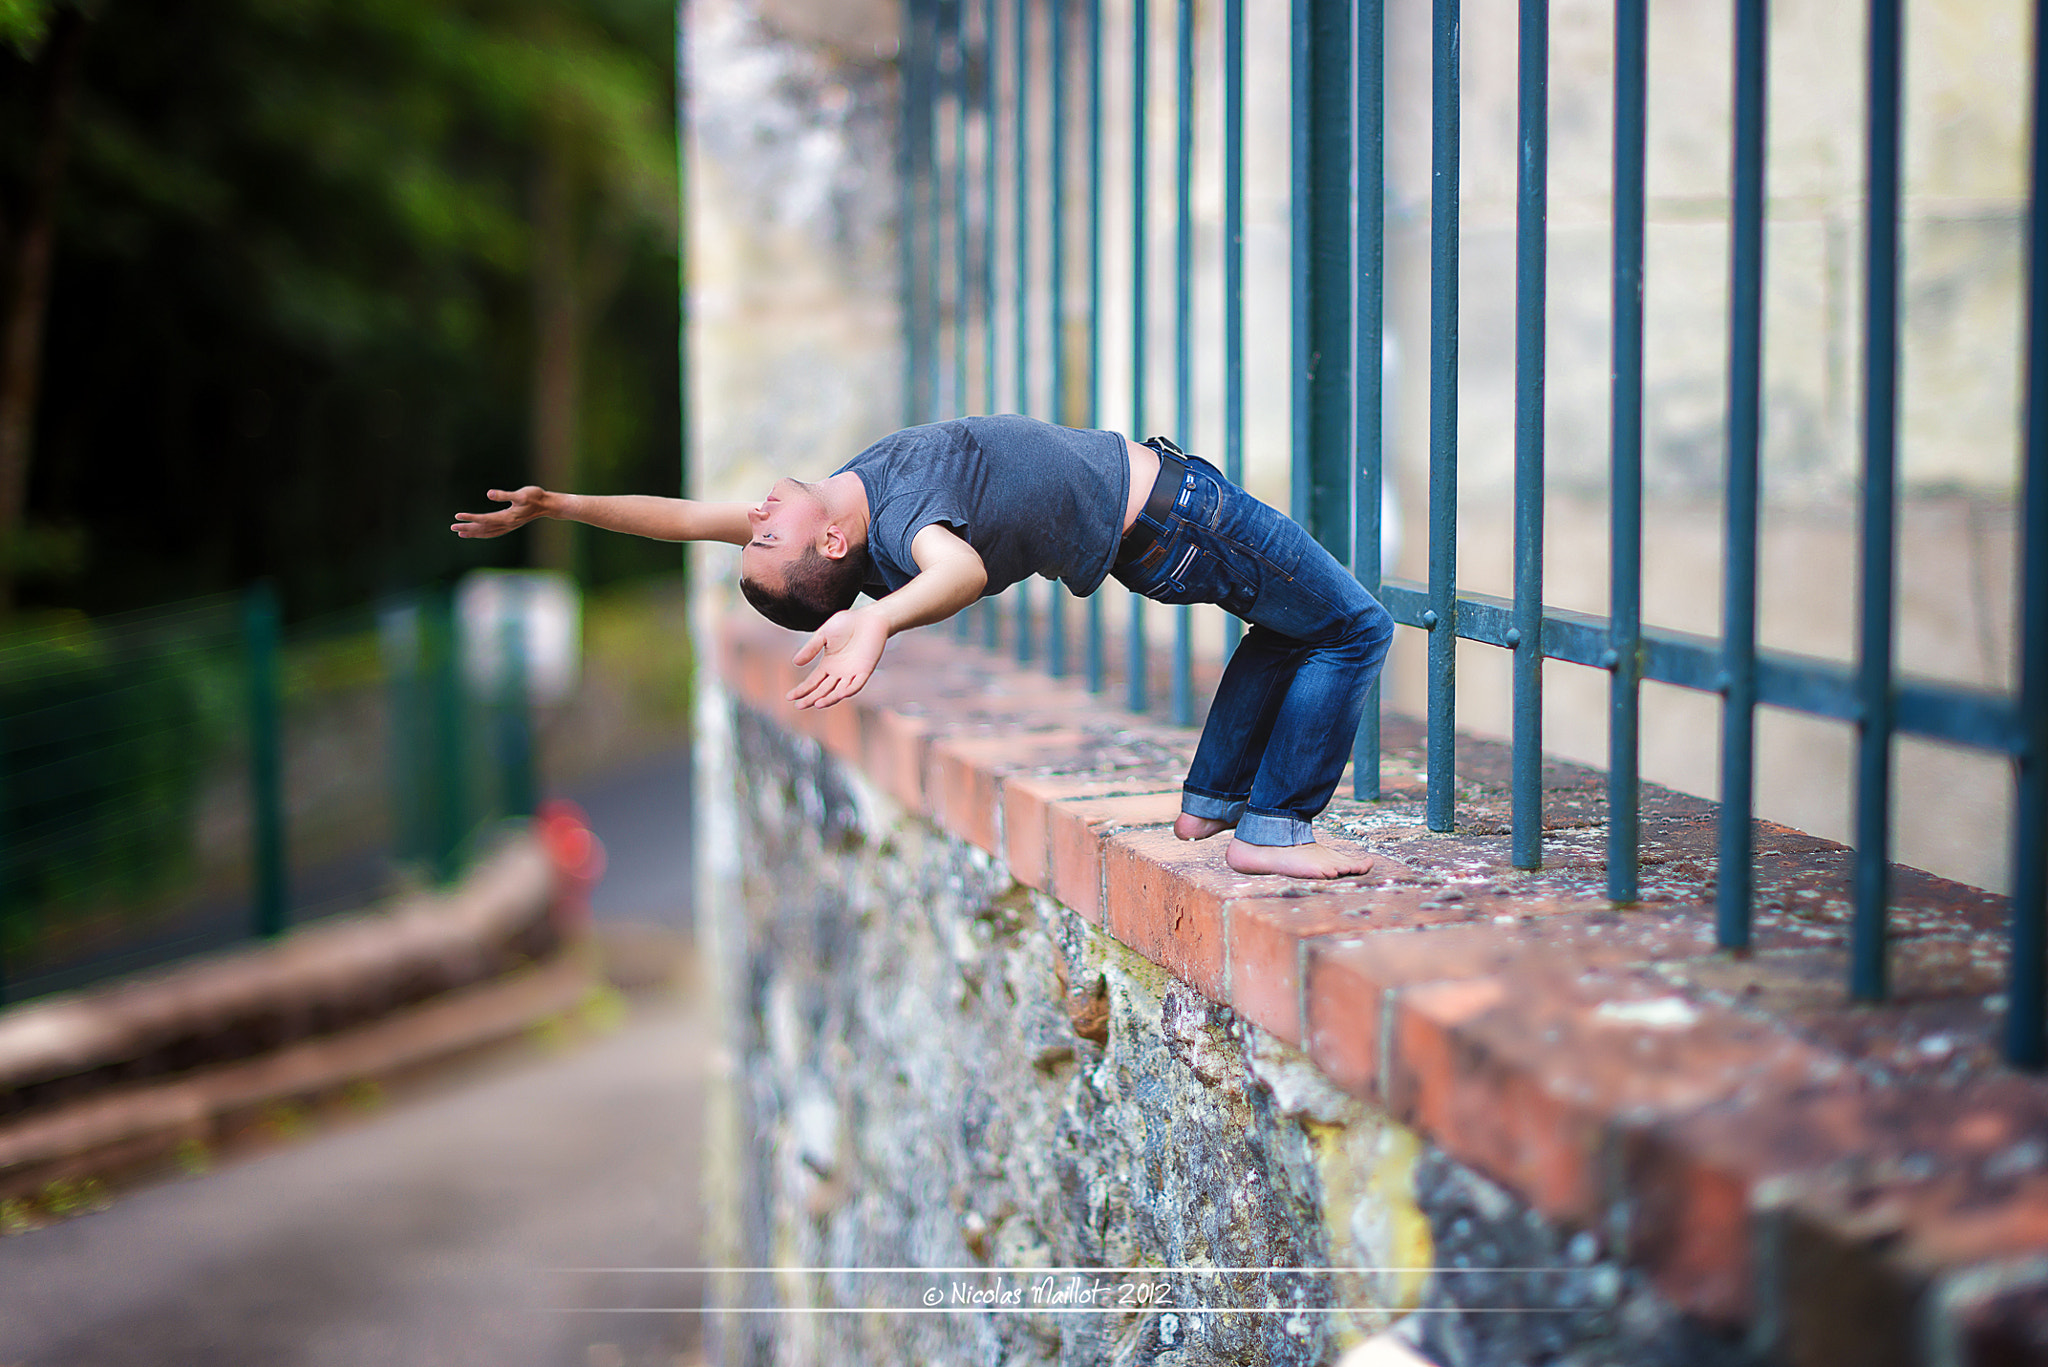 Photograph Falling by Nicolas Maillot on 500px